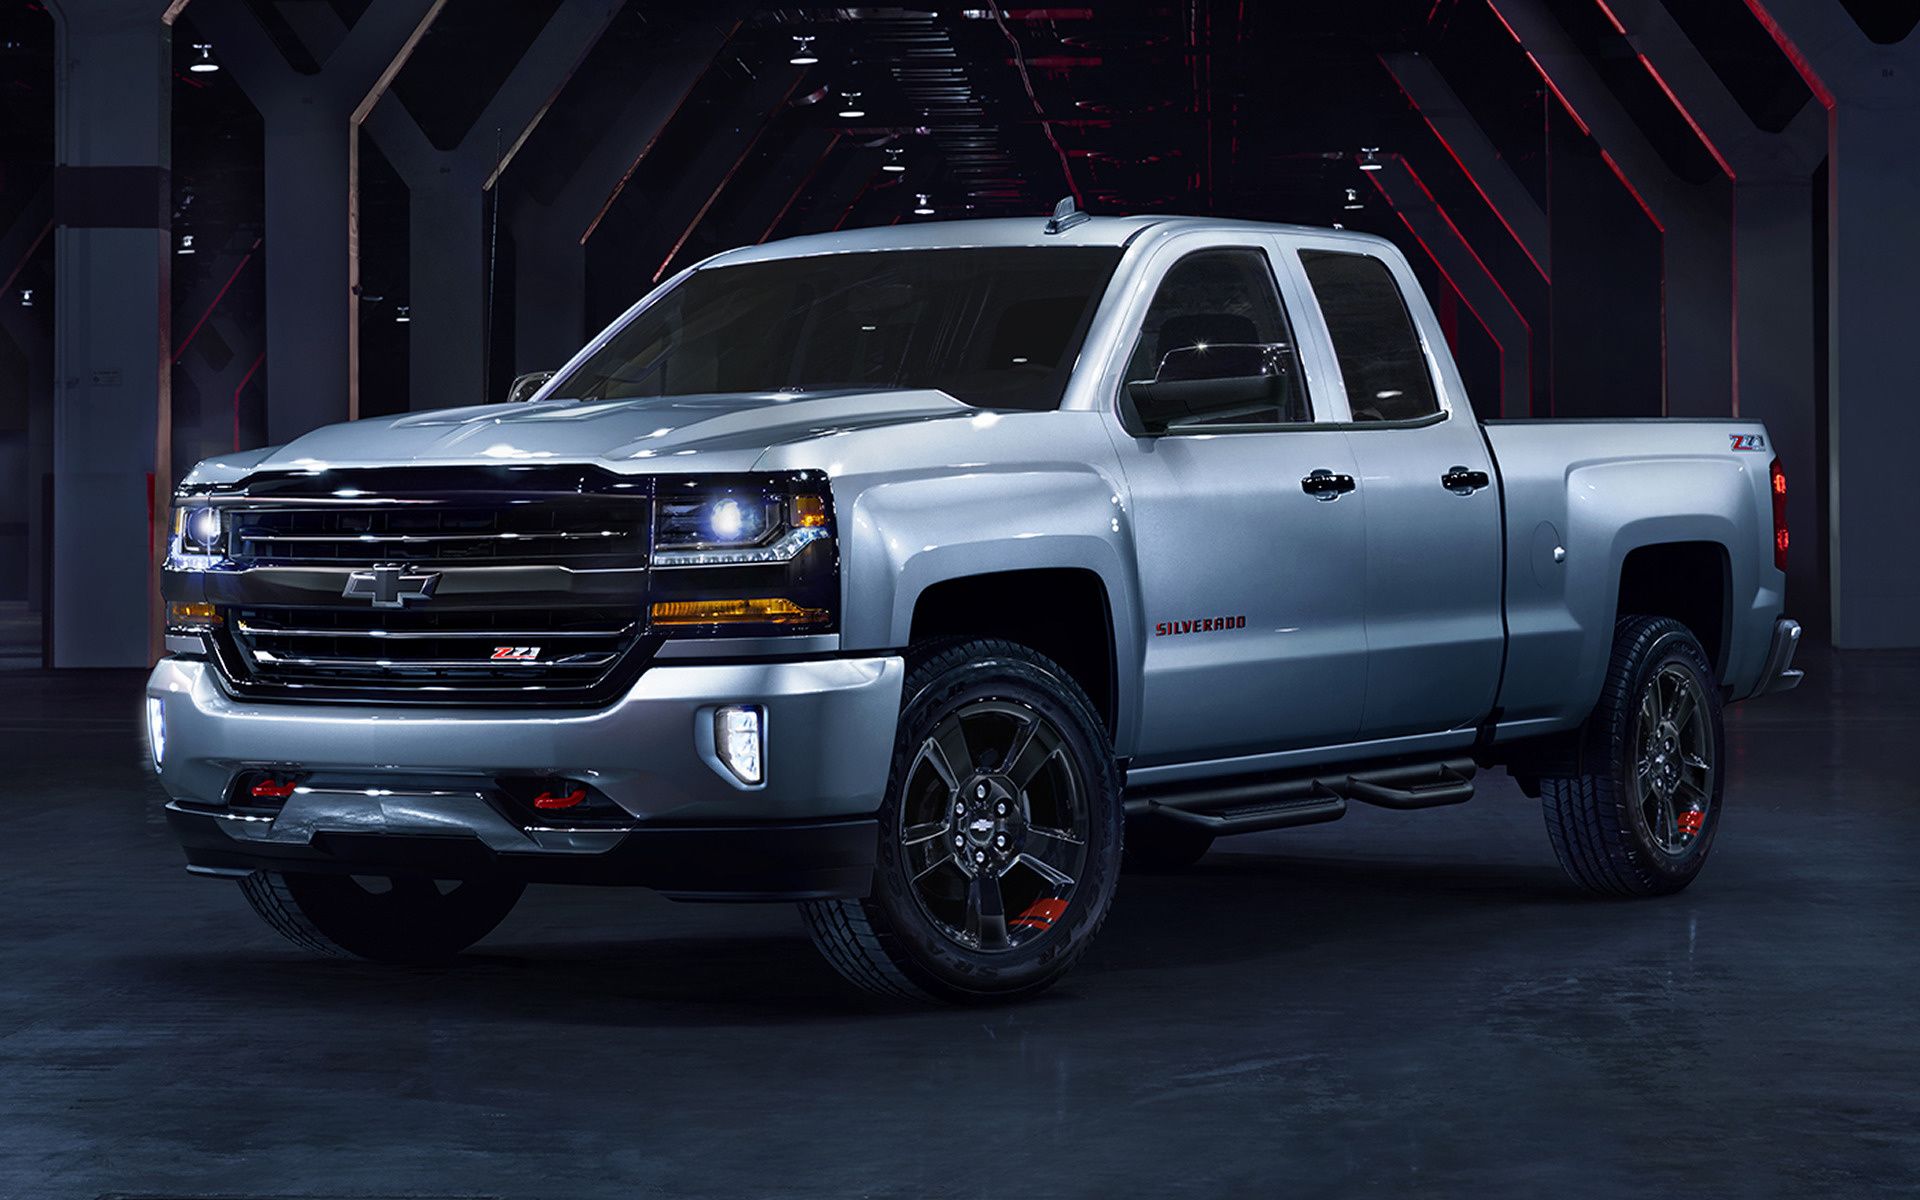 2017 Chevrolet Silverado Z71 Redline Crew Cab - Wallpapers ...